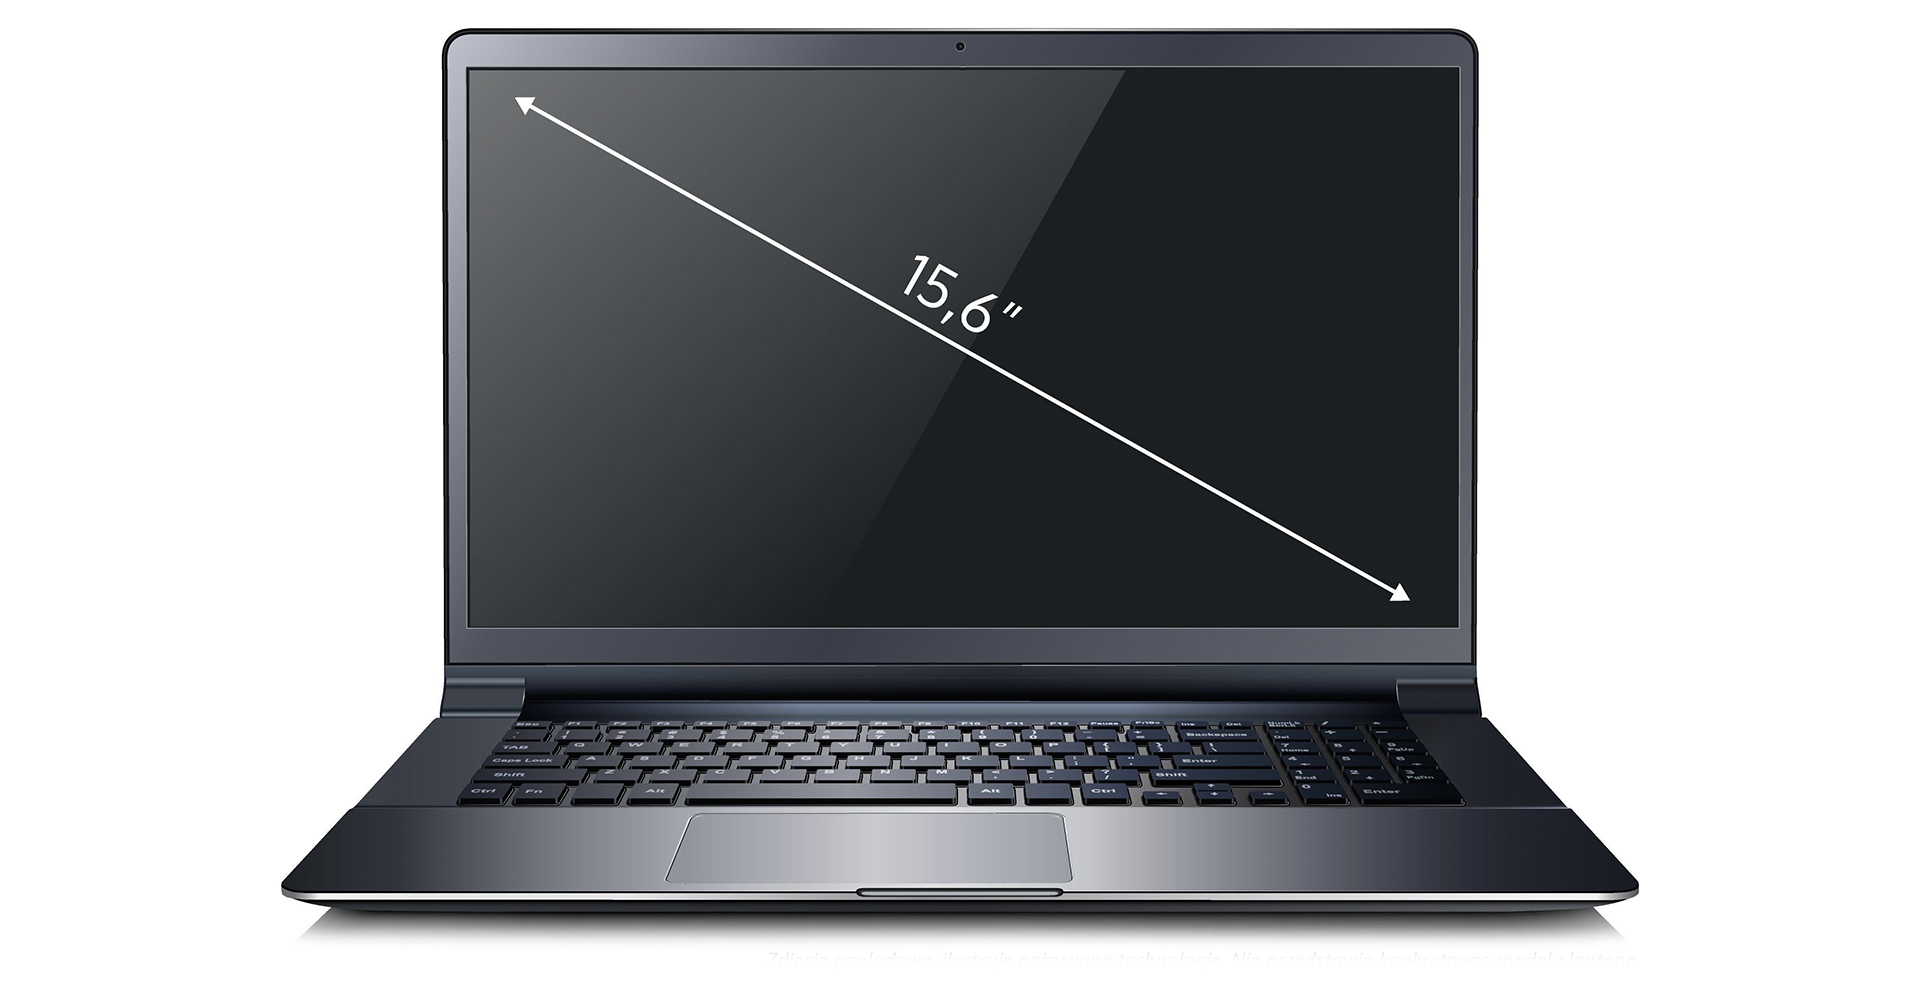 Fujitsu LifeBook A357 (S26391K425V300) 16 GB RAM/ 512 GB SSD/ 1TB HDD/ Windows 10 Pro                             15.6-tollise diagonaaliga